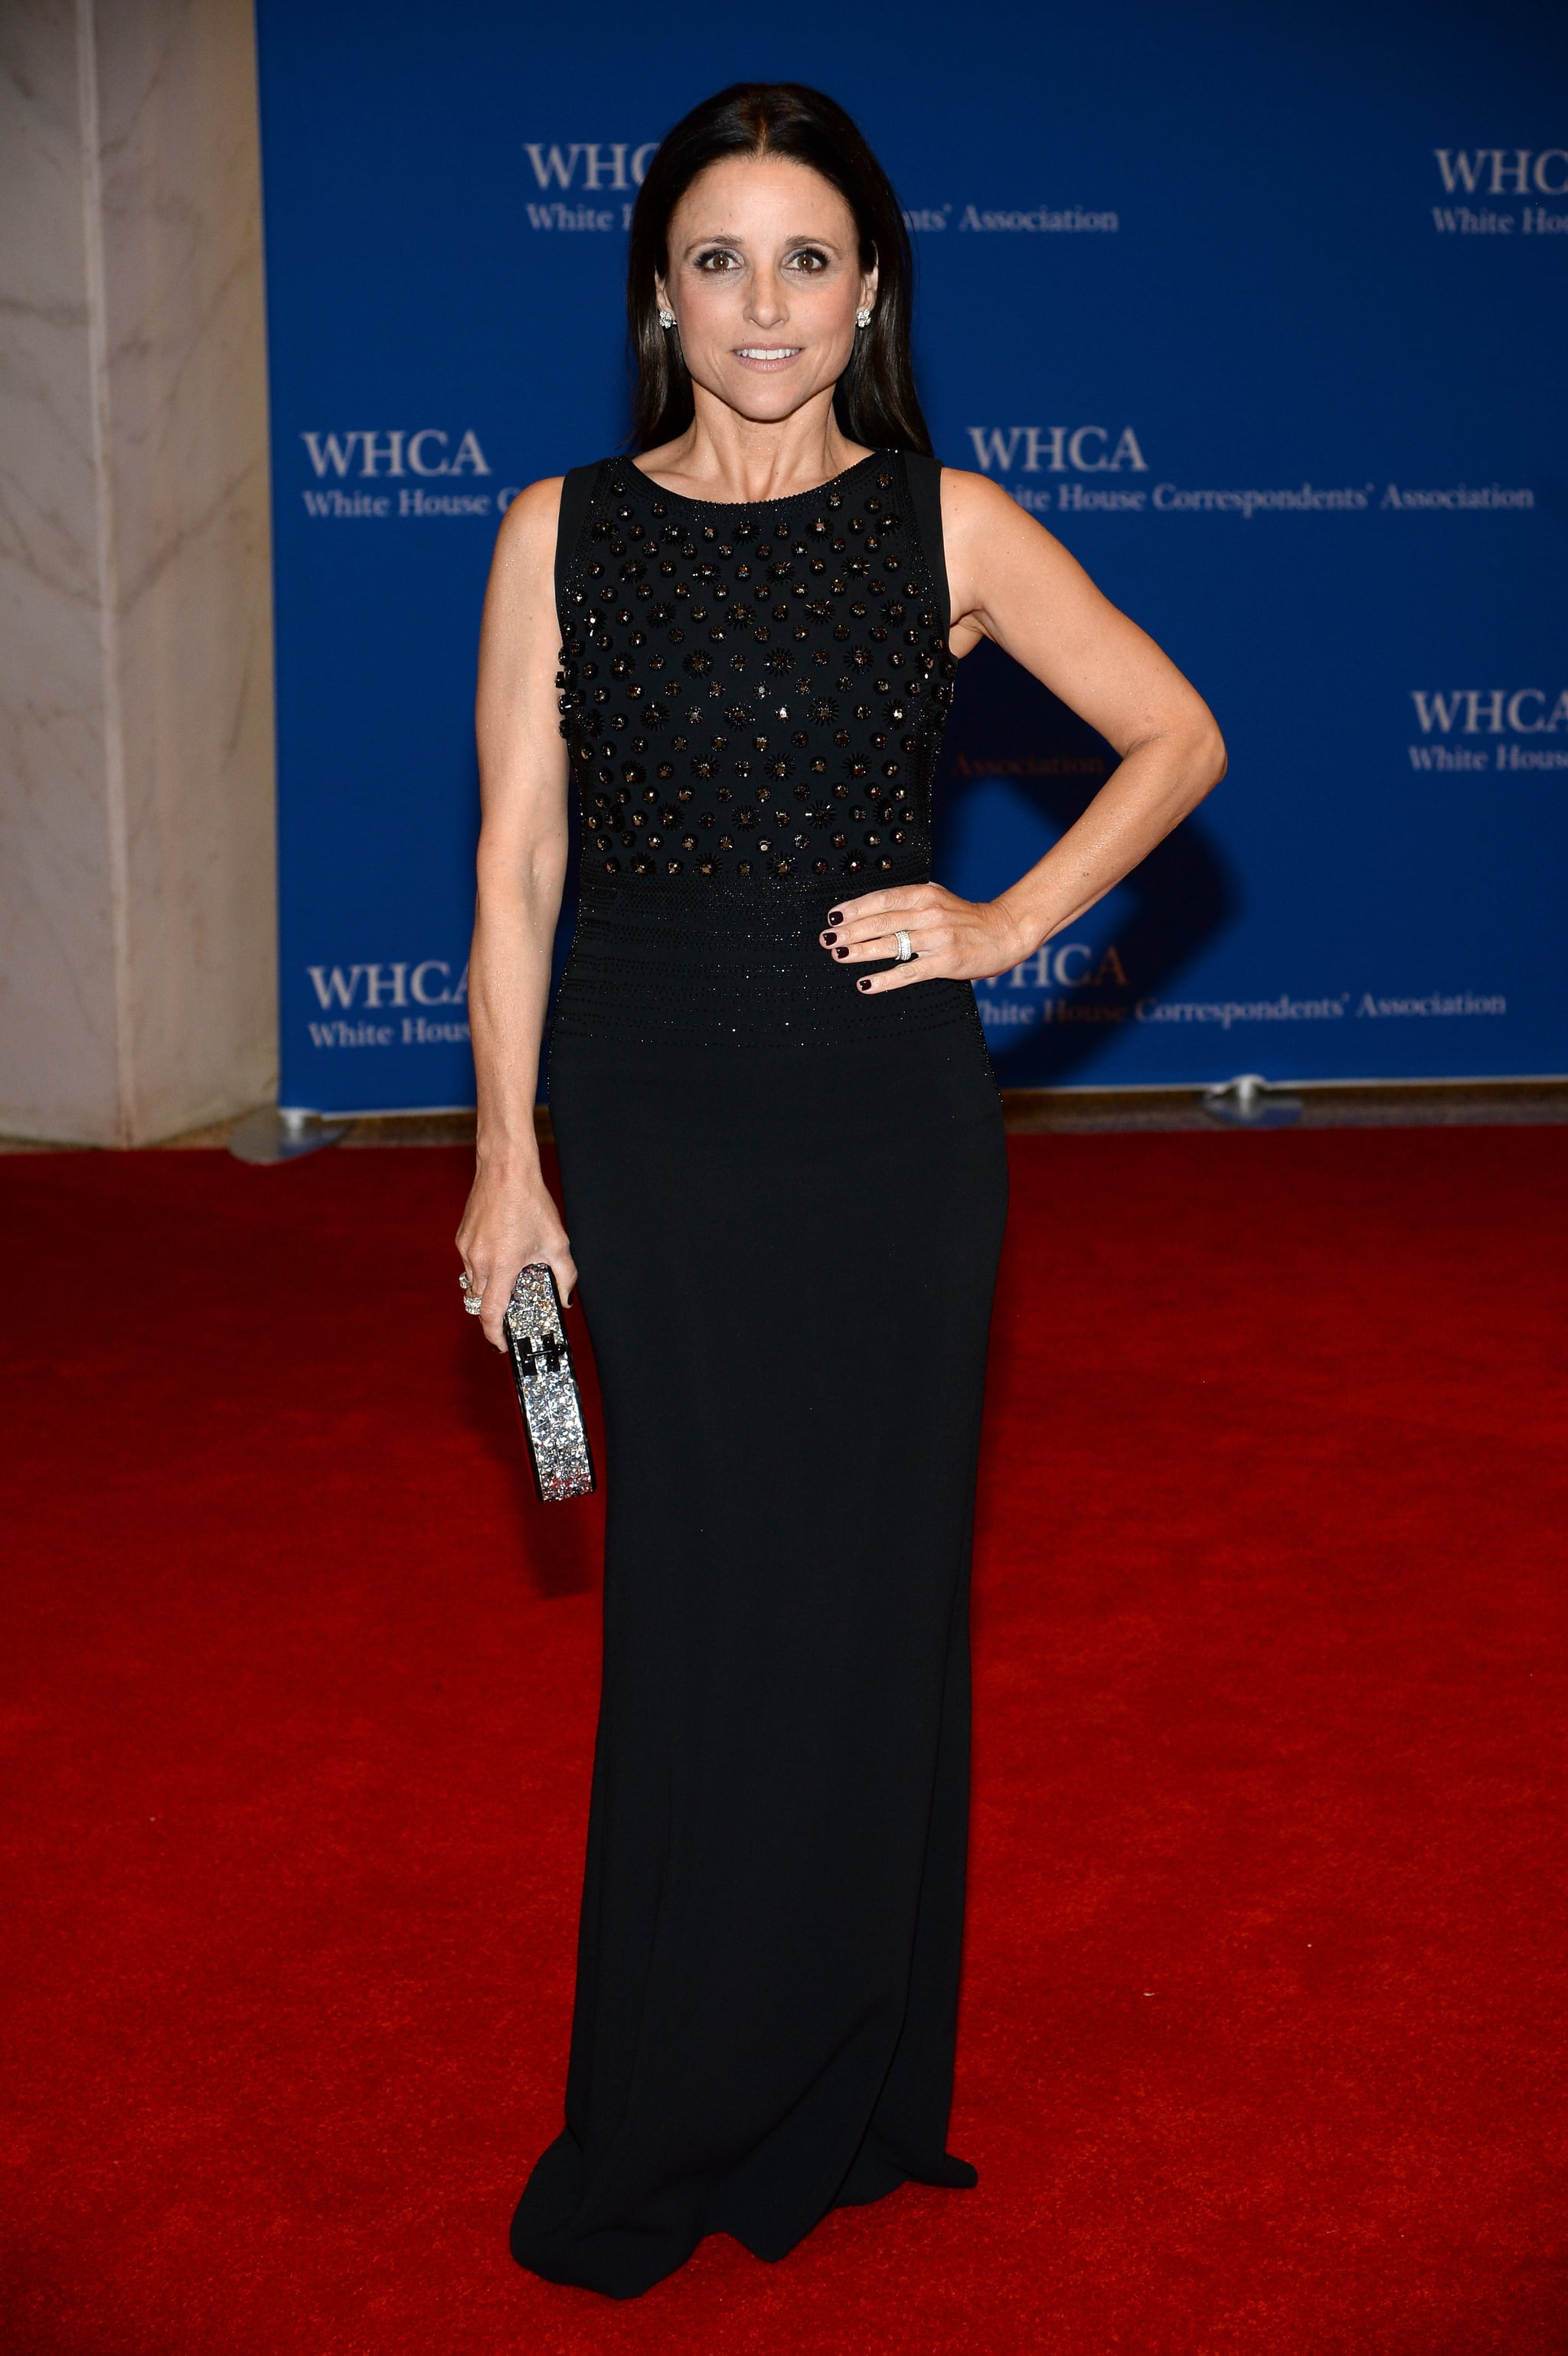 Julia Louis-Dreyfus had her turn on the red carpet.